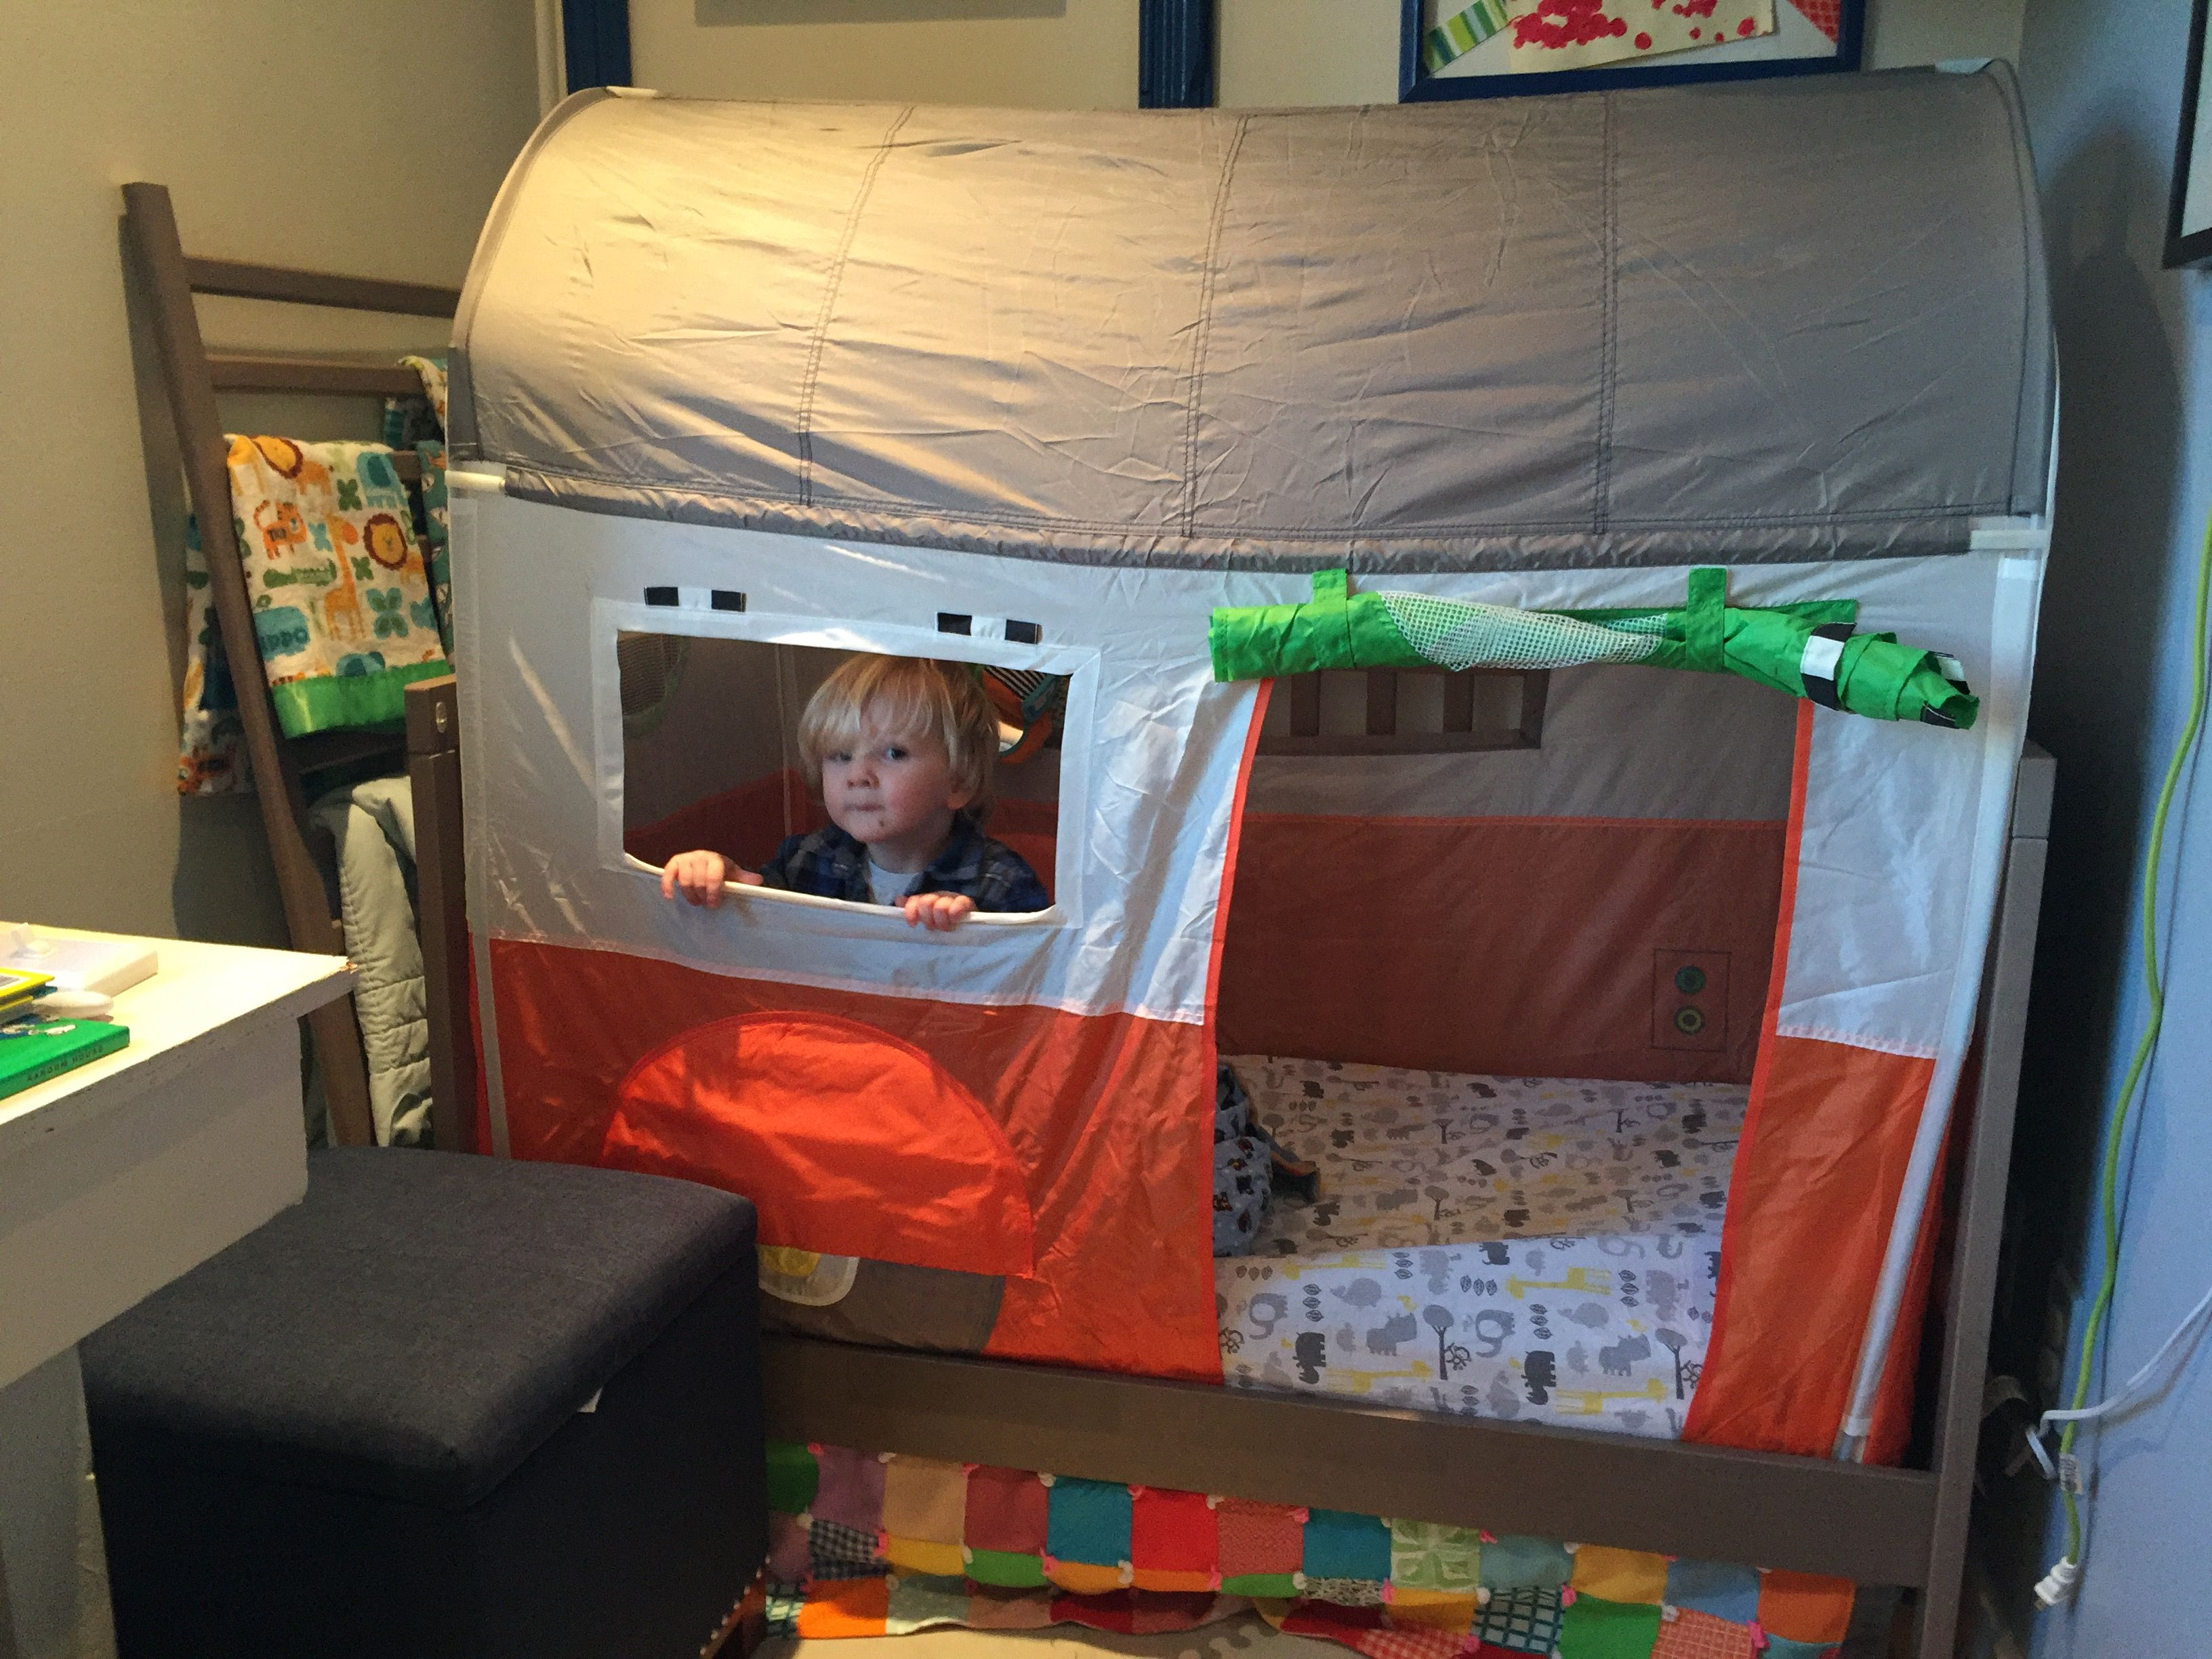 The Ikea Camper Trailer Tent Is Basically The Perfect Size For The Ikea Cribs So It Became A Fun Bed Cover For My Boys Ro Ikea Kids Tent Bed Tent Kids